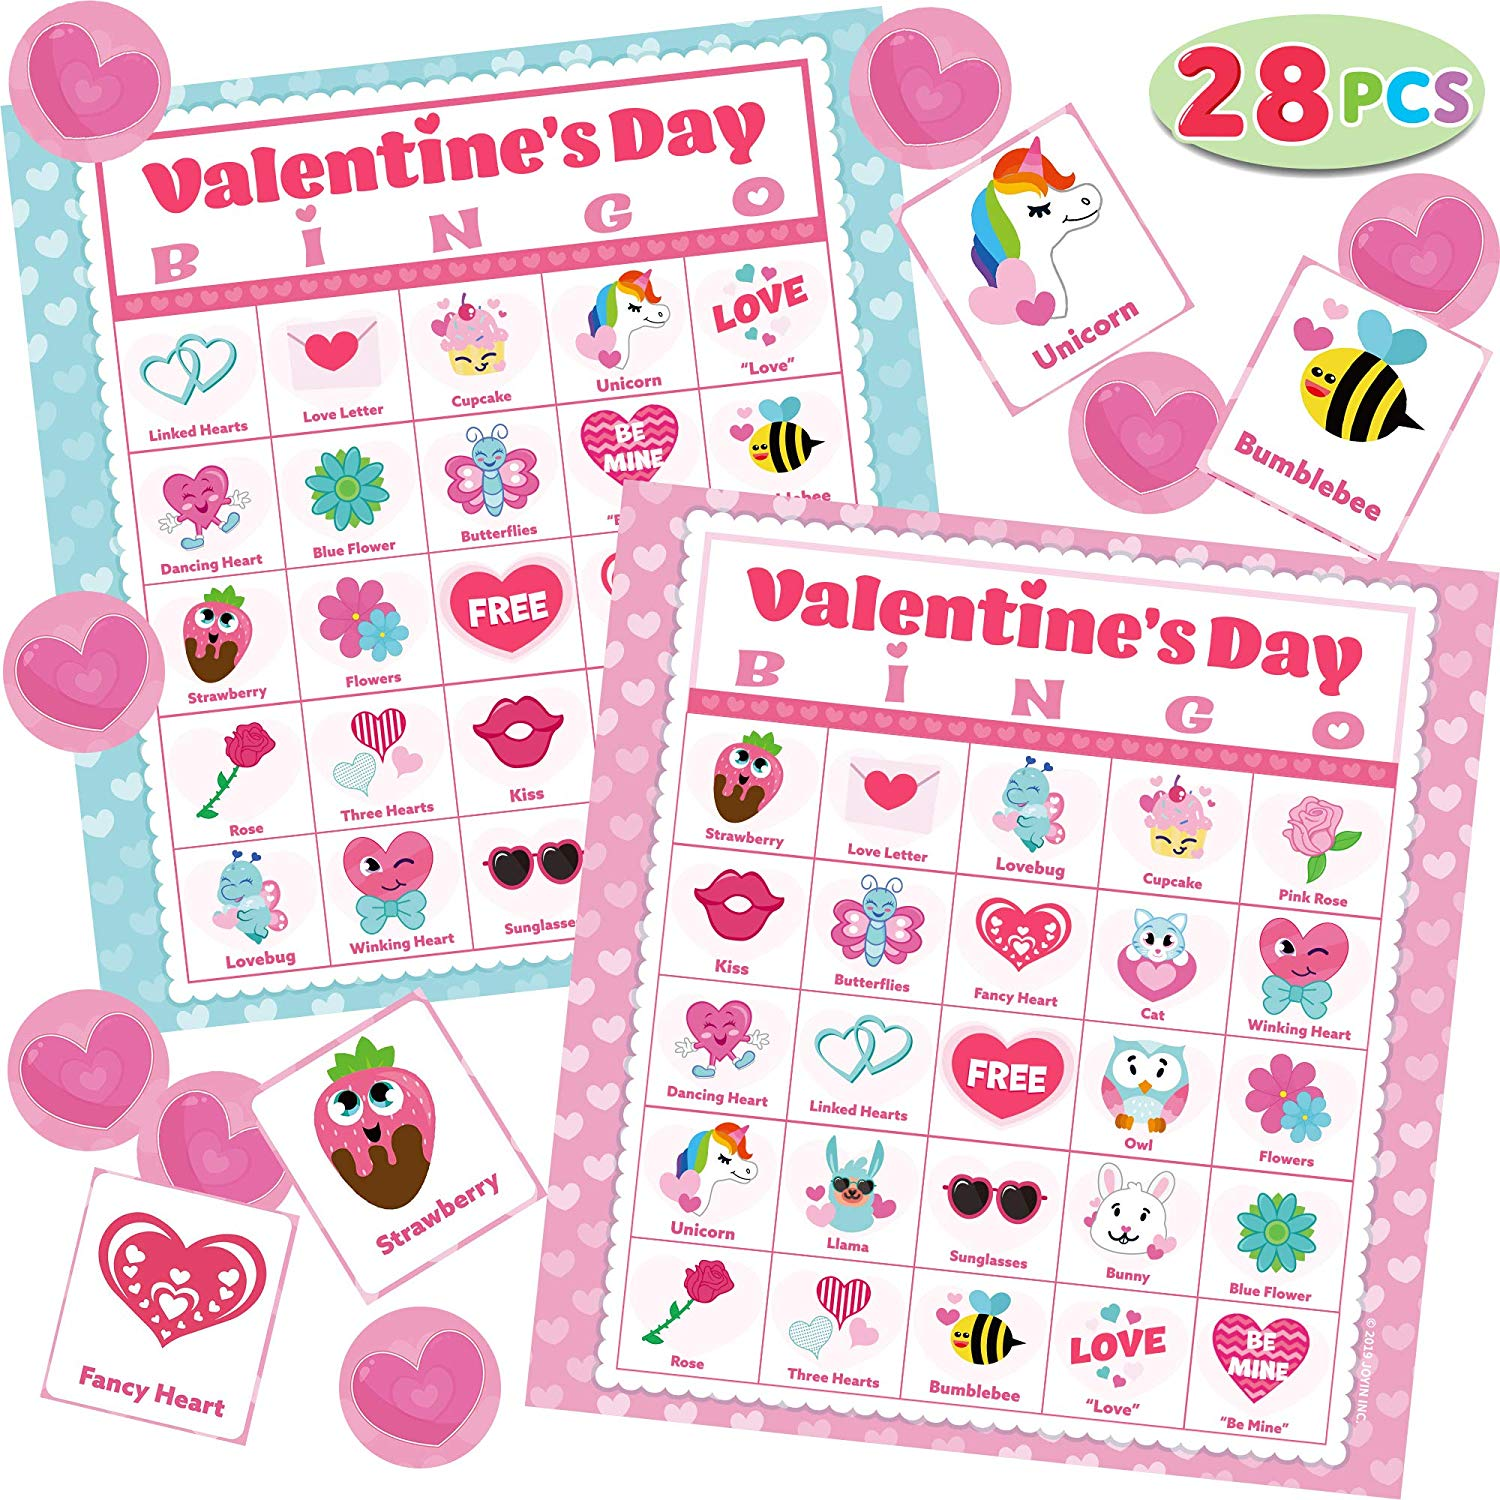 56 Players Valentines Day Bingo Cards (5x5) for Kids